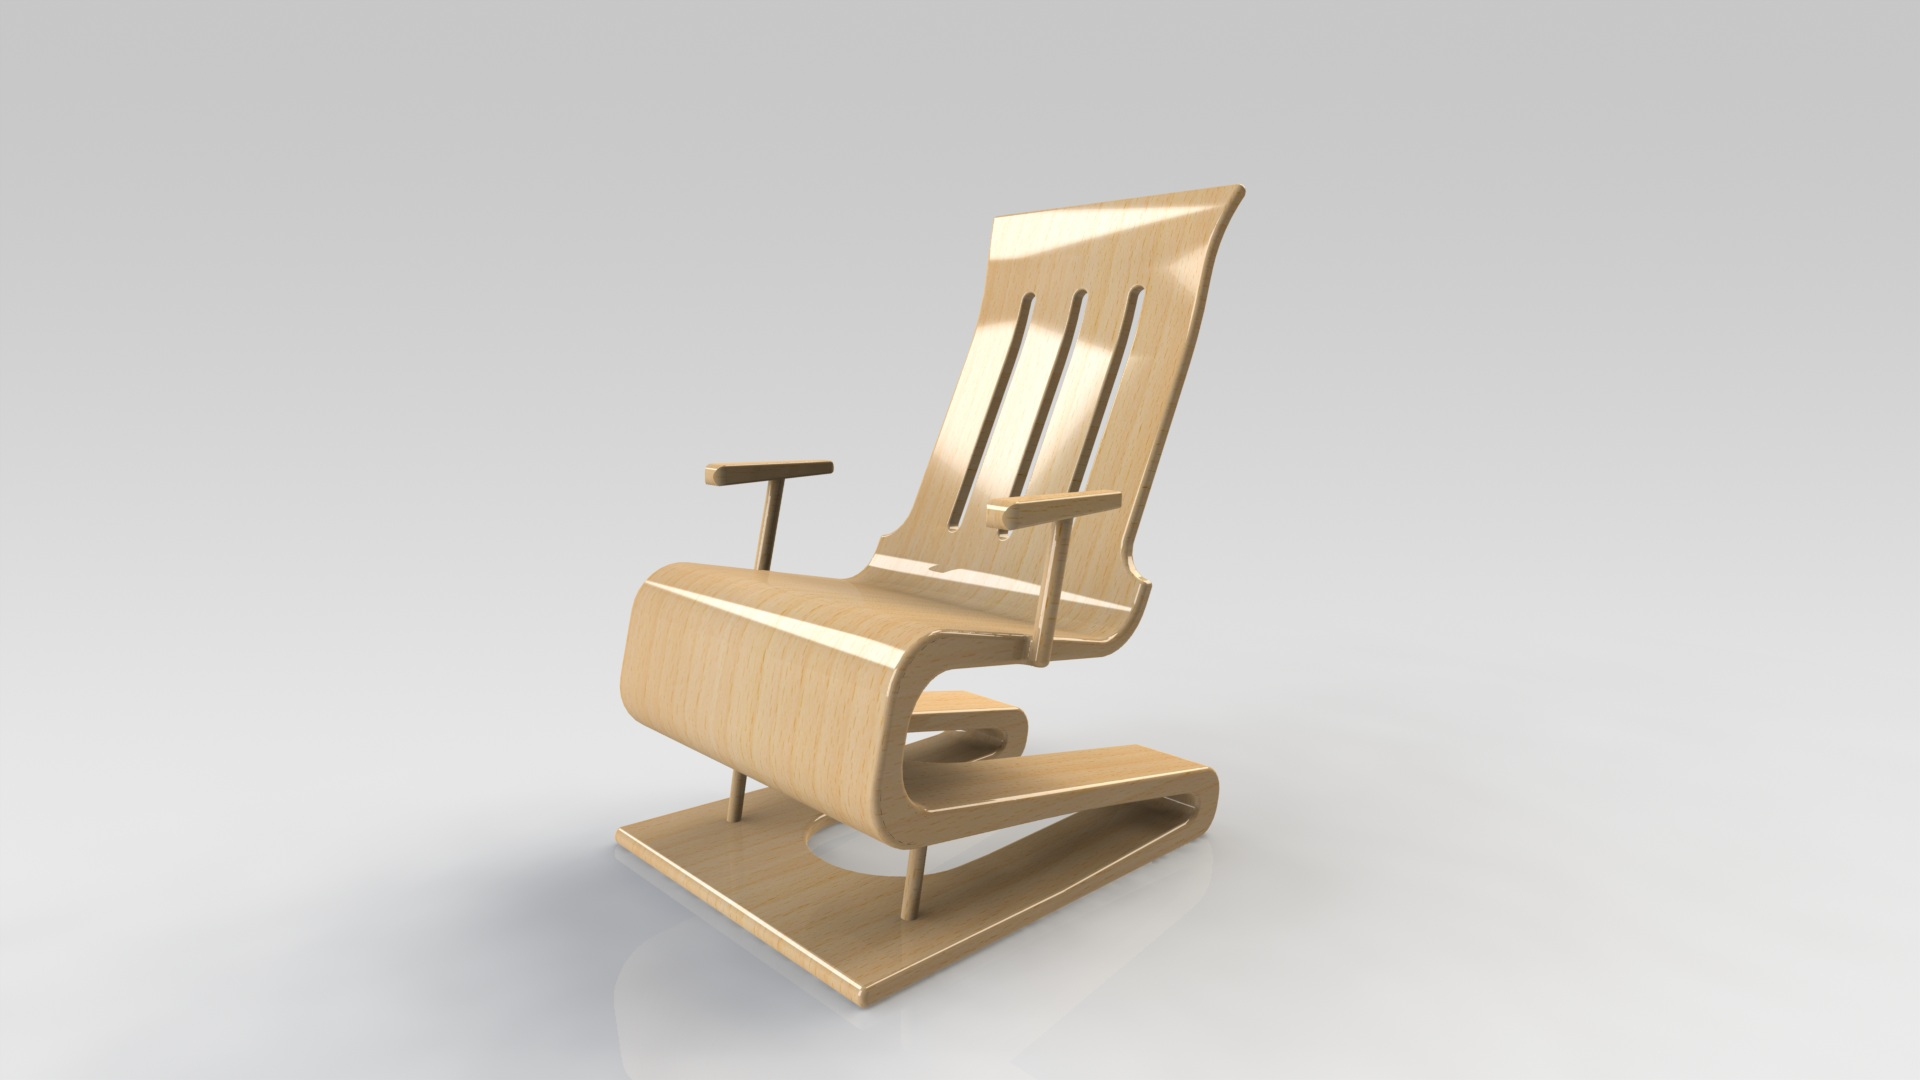 Sustainable Design of Chair